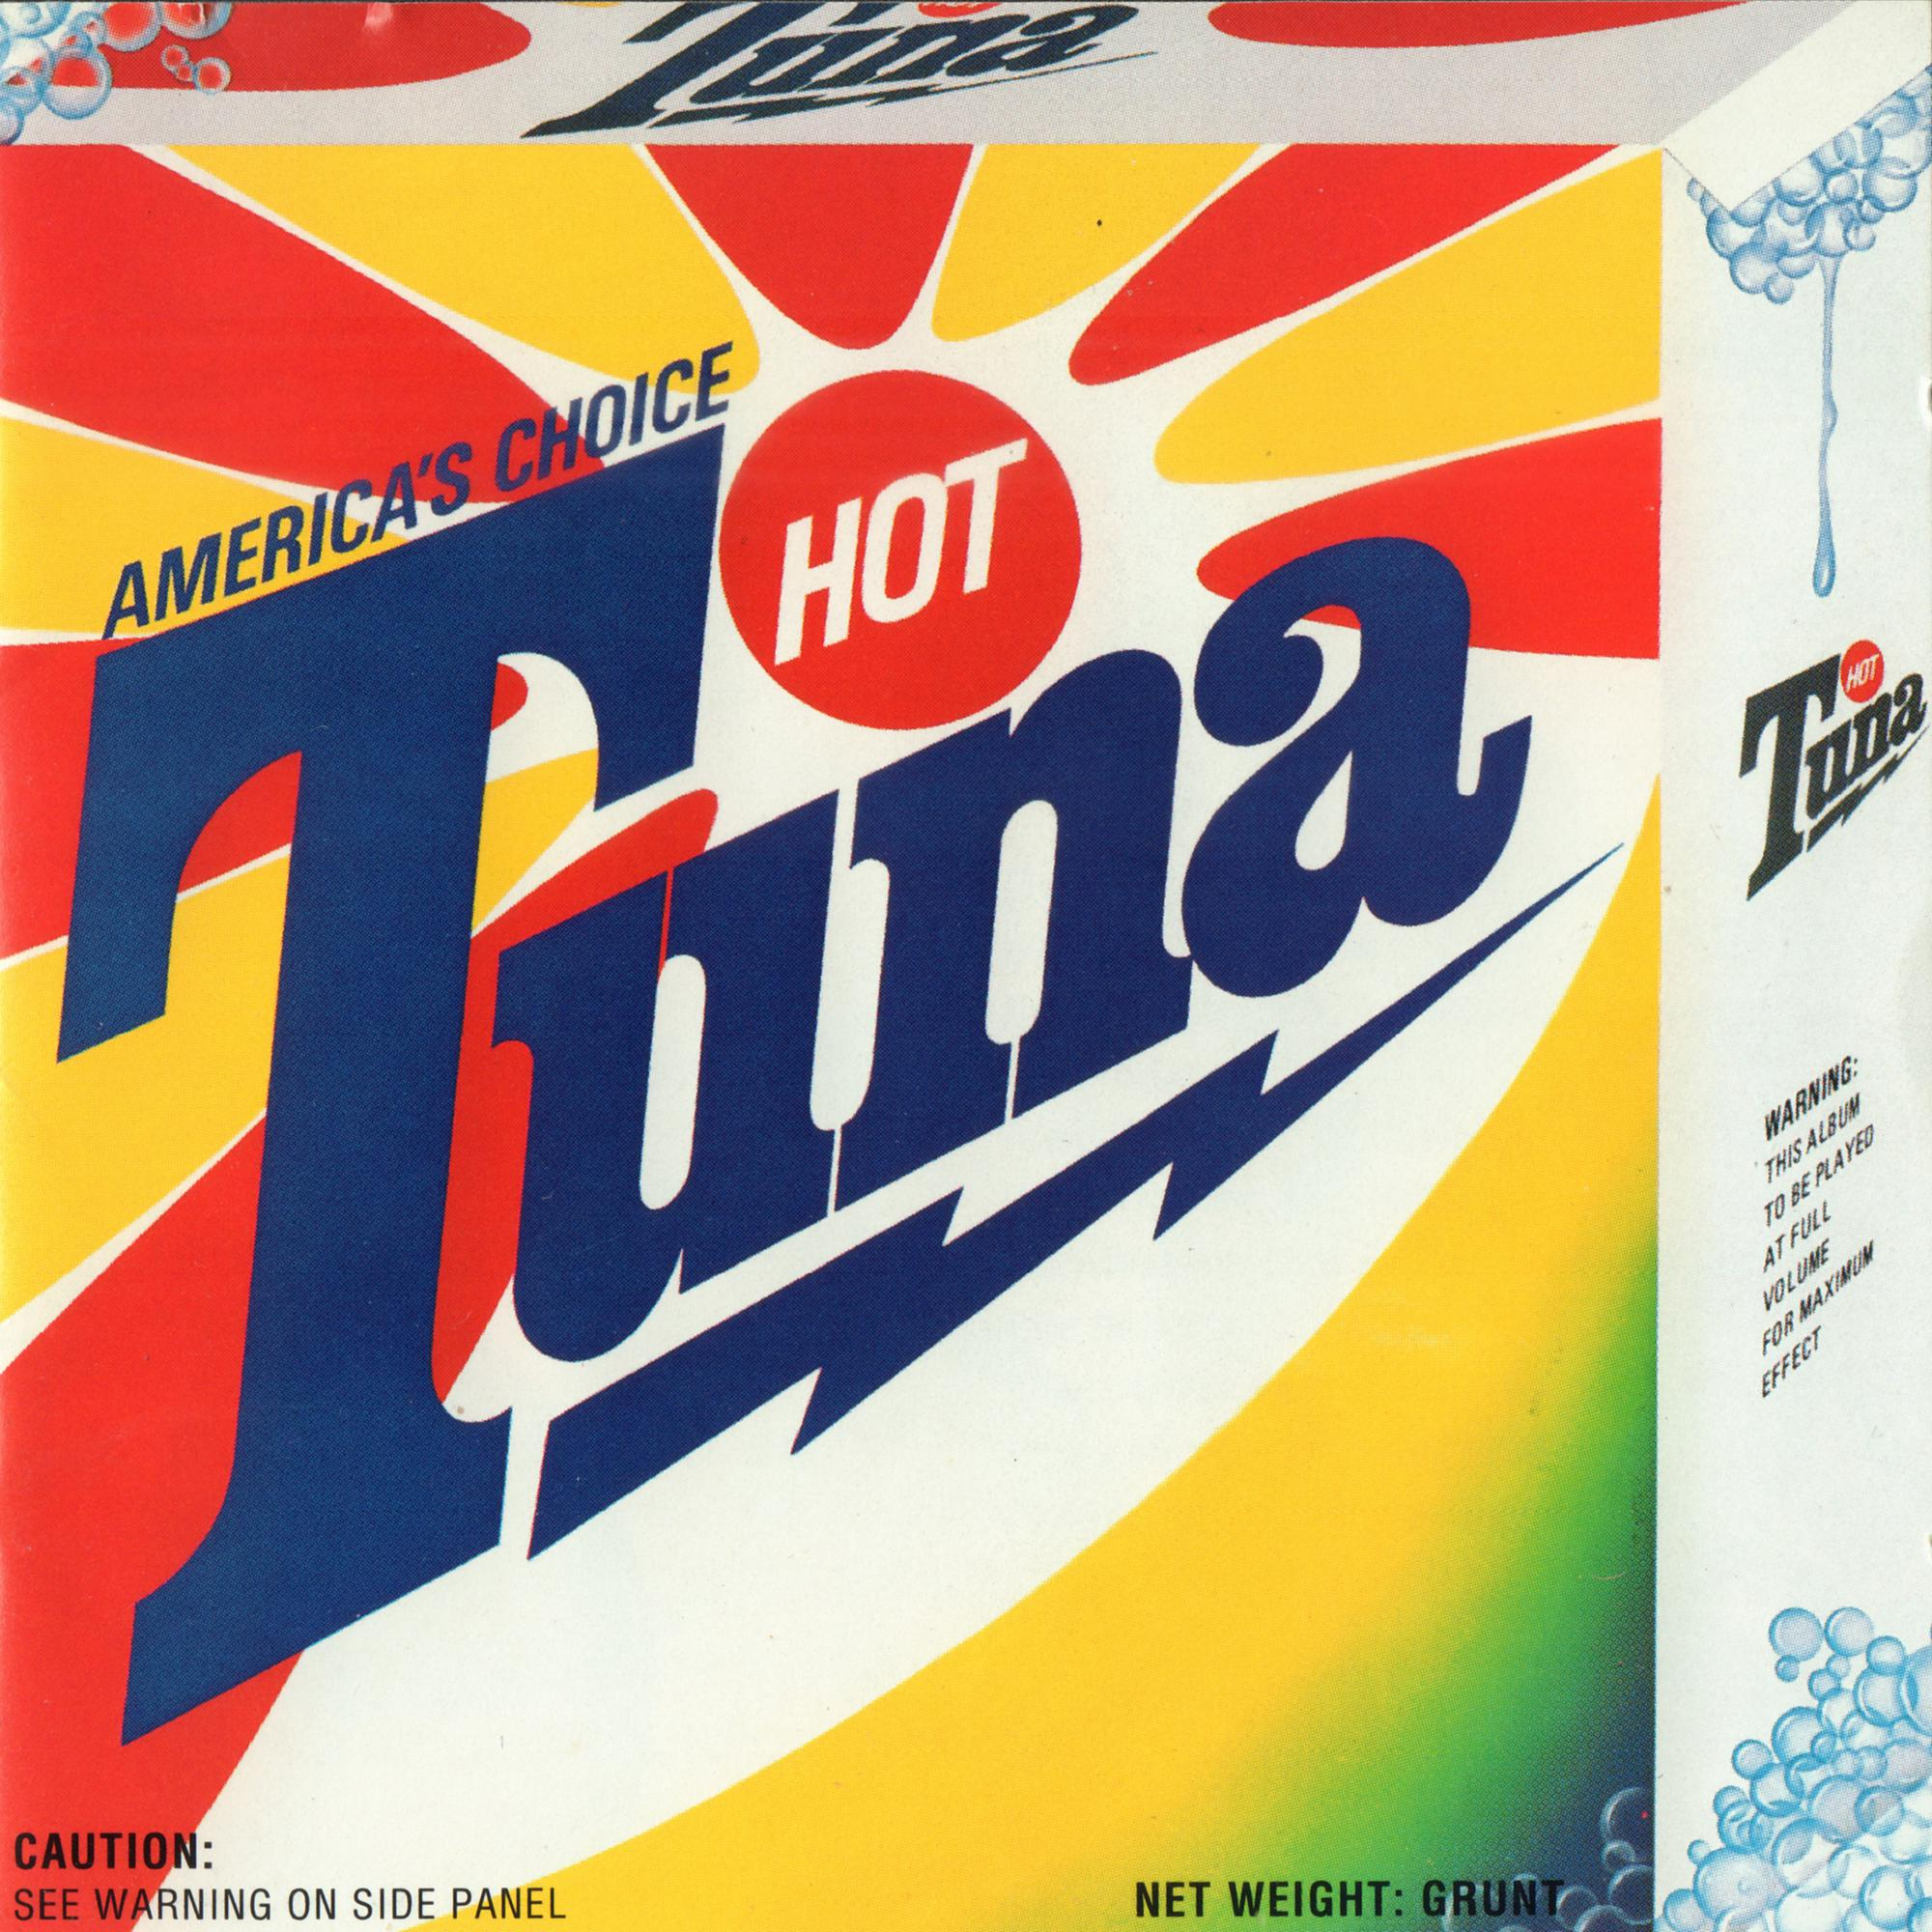 Hot Tuna - America's Choice [RSD Drops 2021]